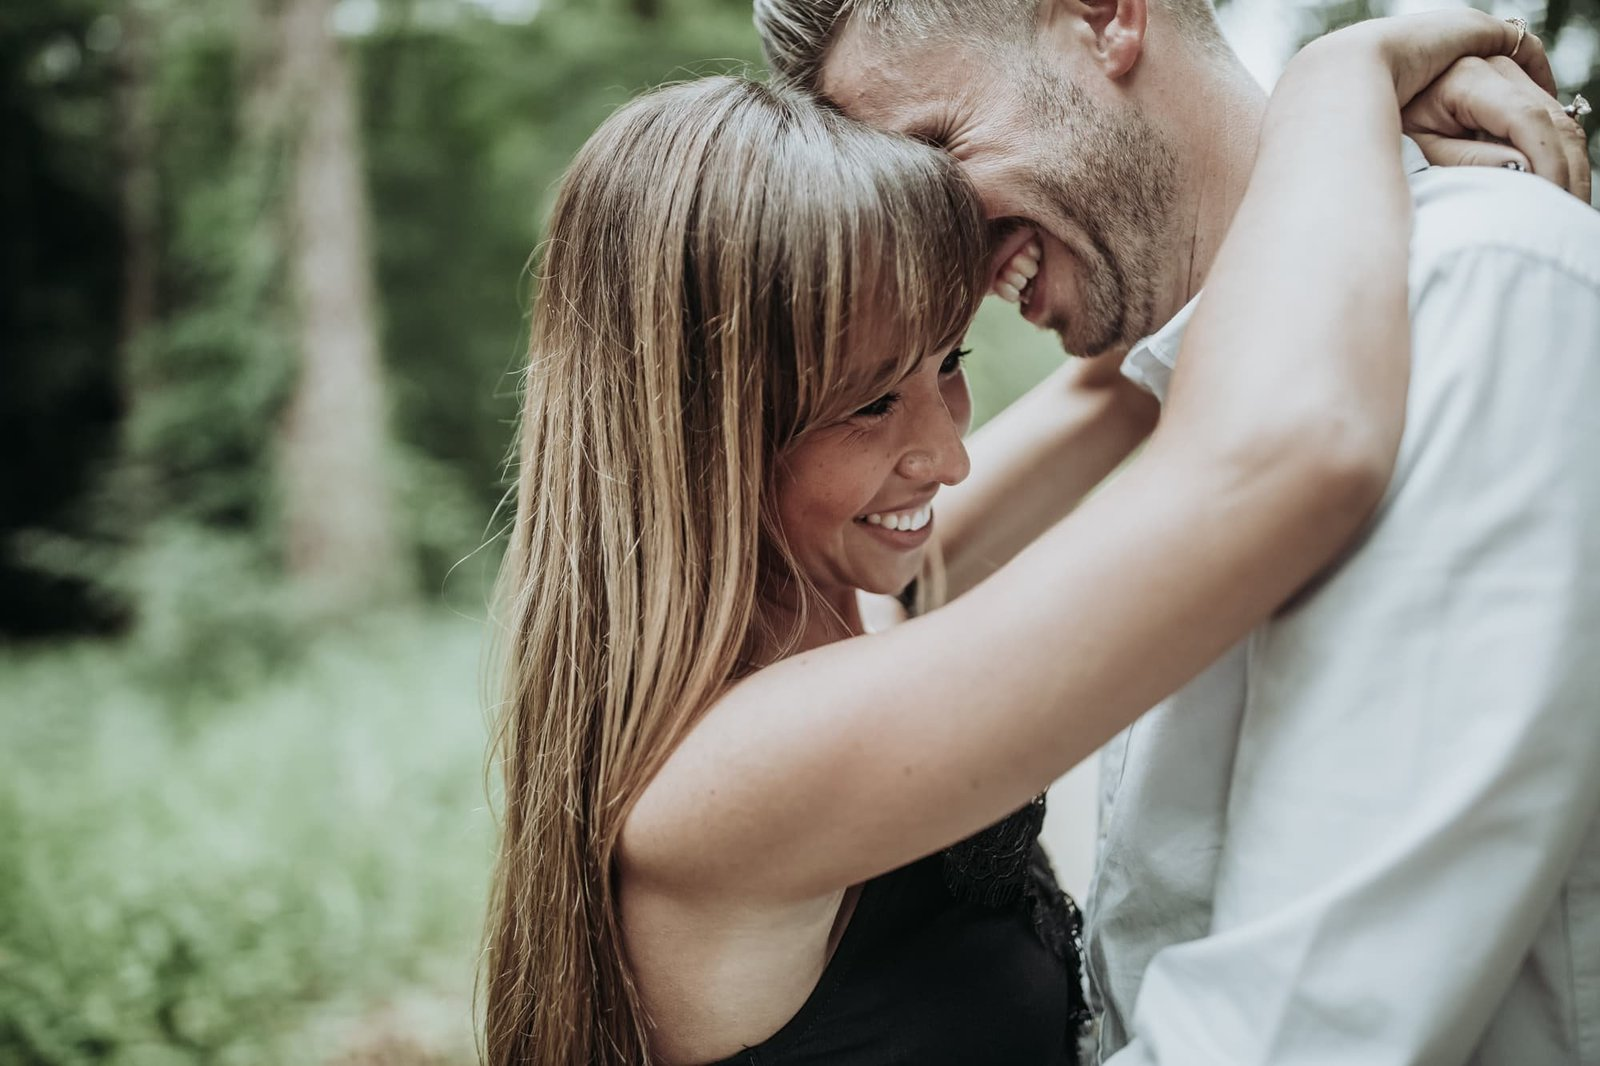 Engaged couple enjoy a hug in Bacton wood, Norfolk and laugh.